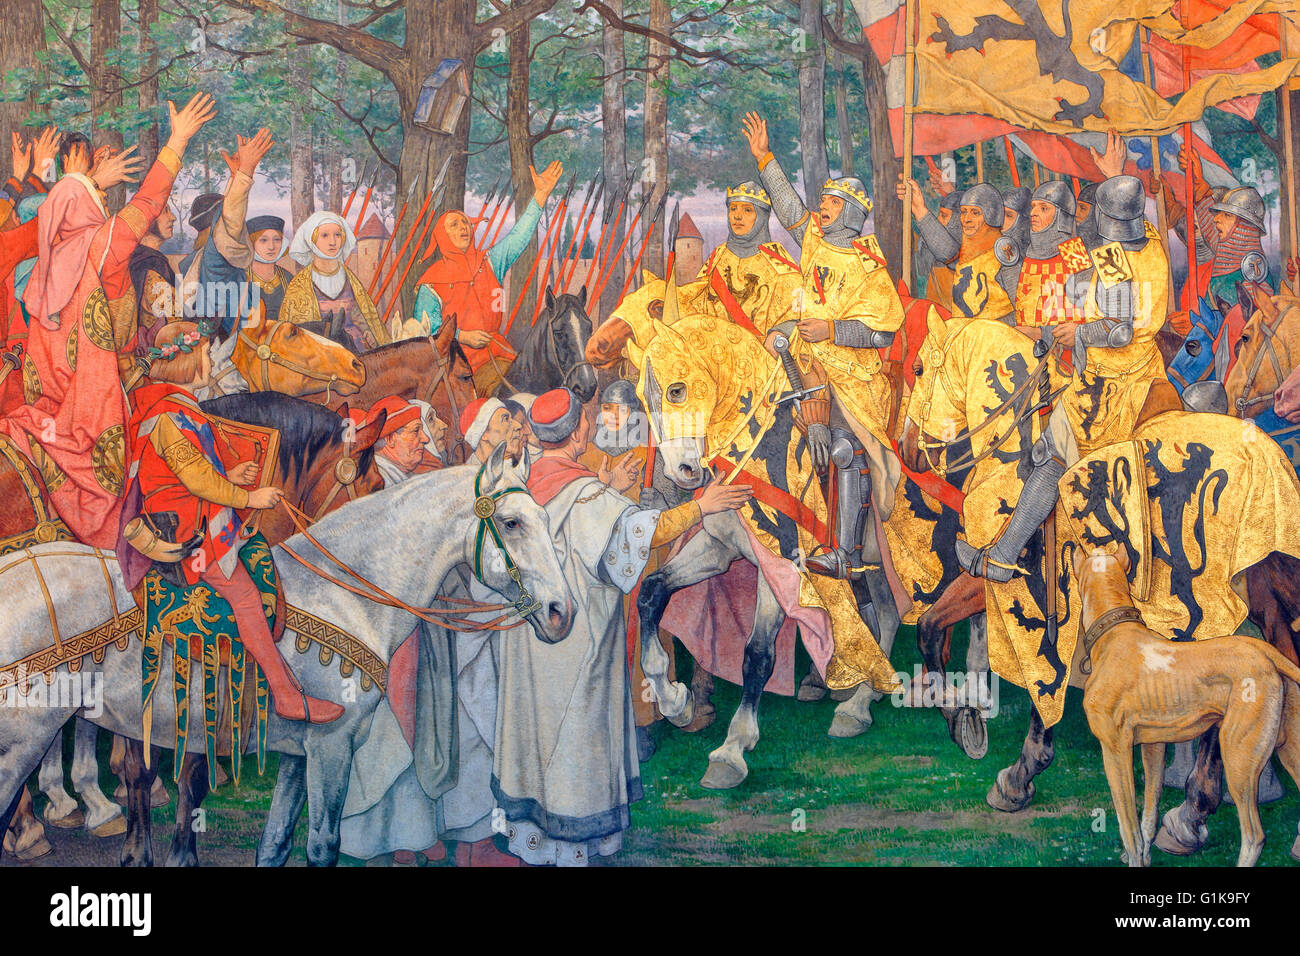 A mural painting depicting the Flemish victory at the Battle of the Golden Spurs (1302) inside the town hall in - Stock Image